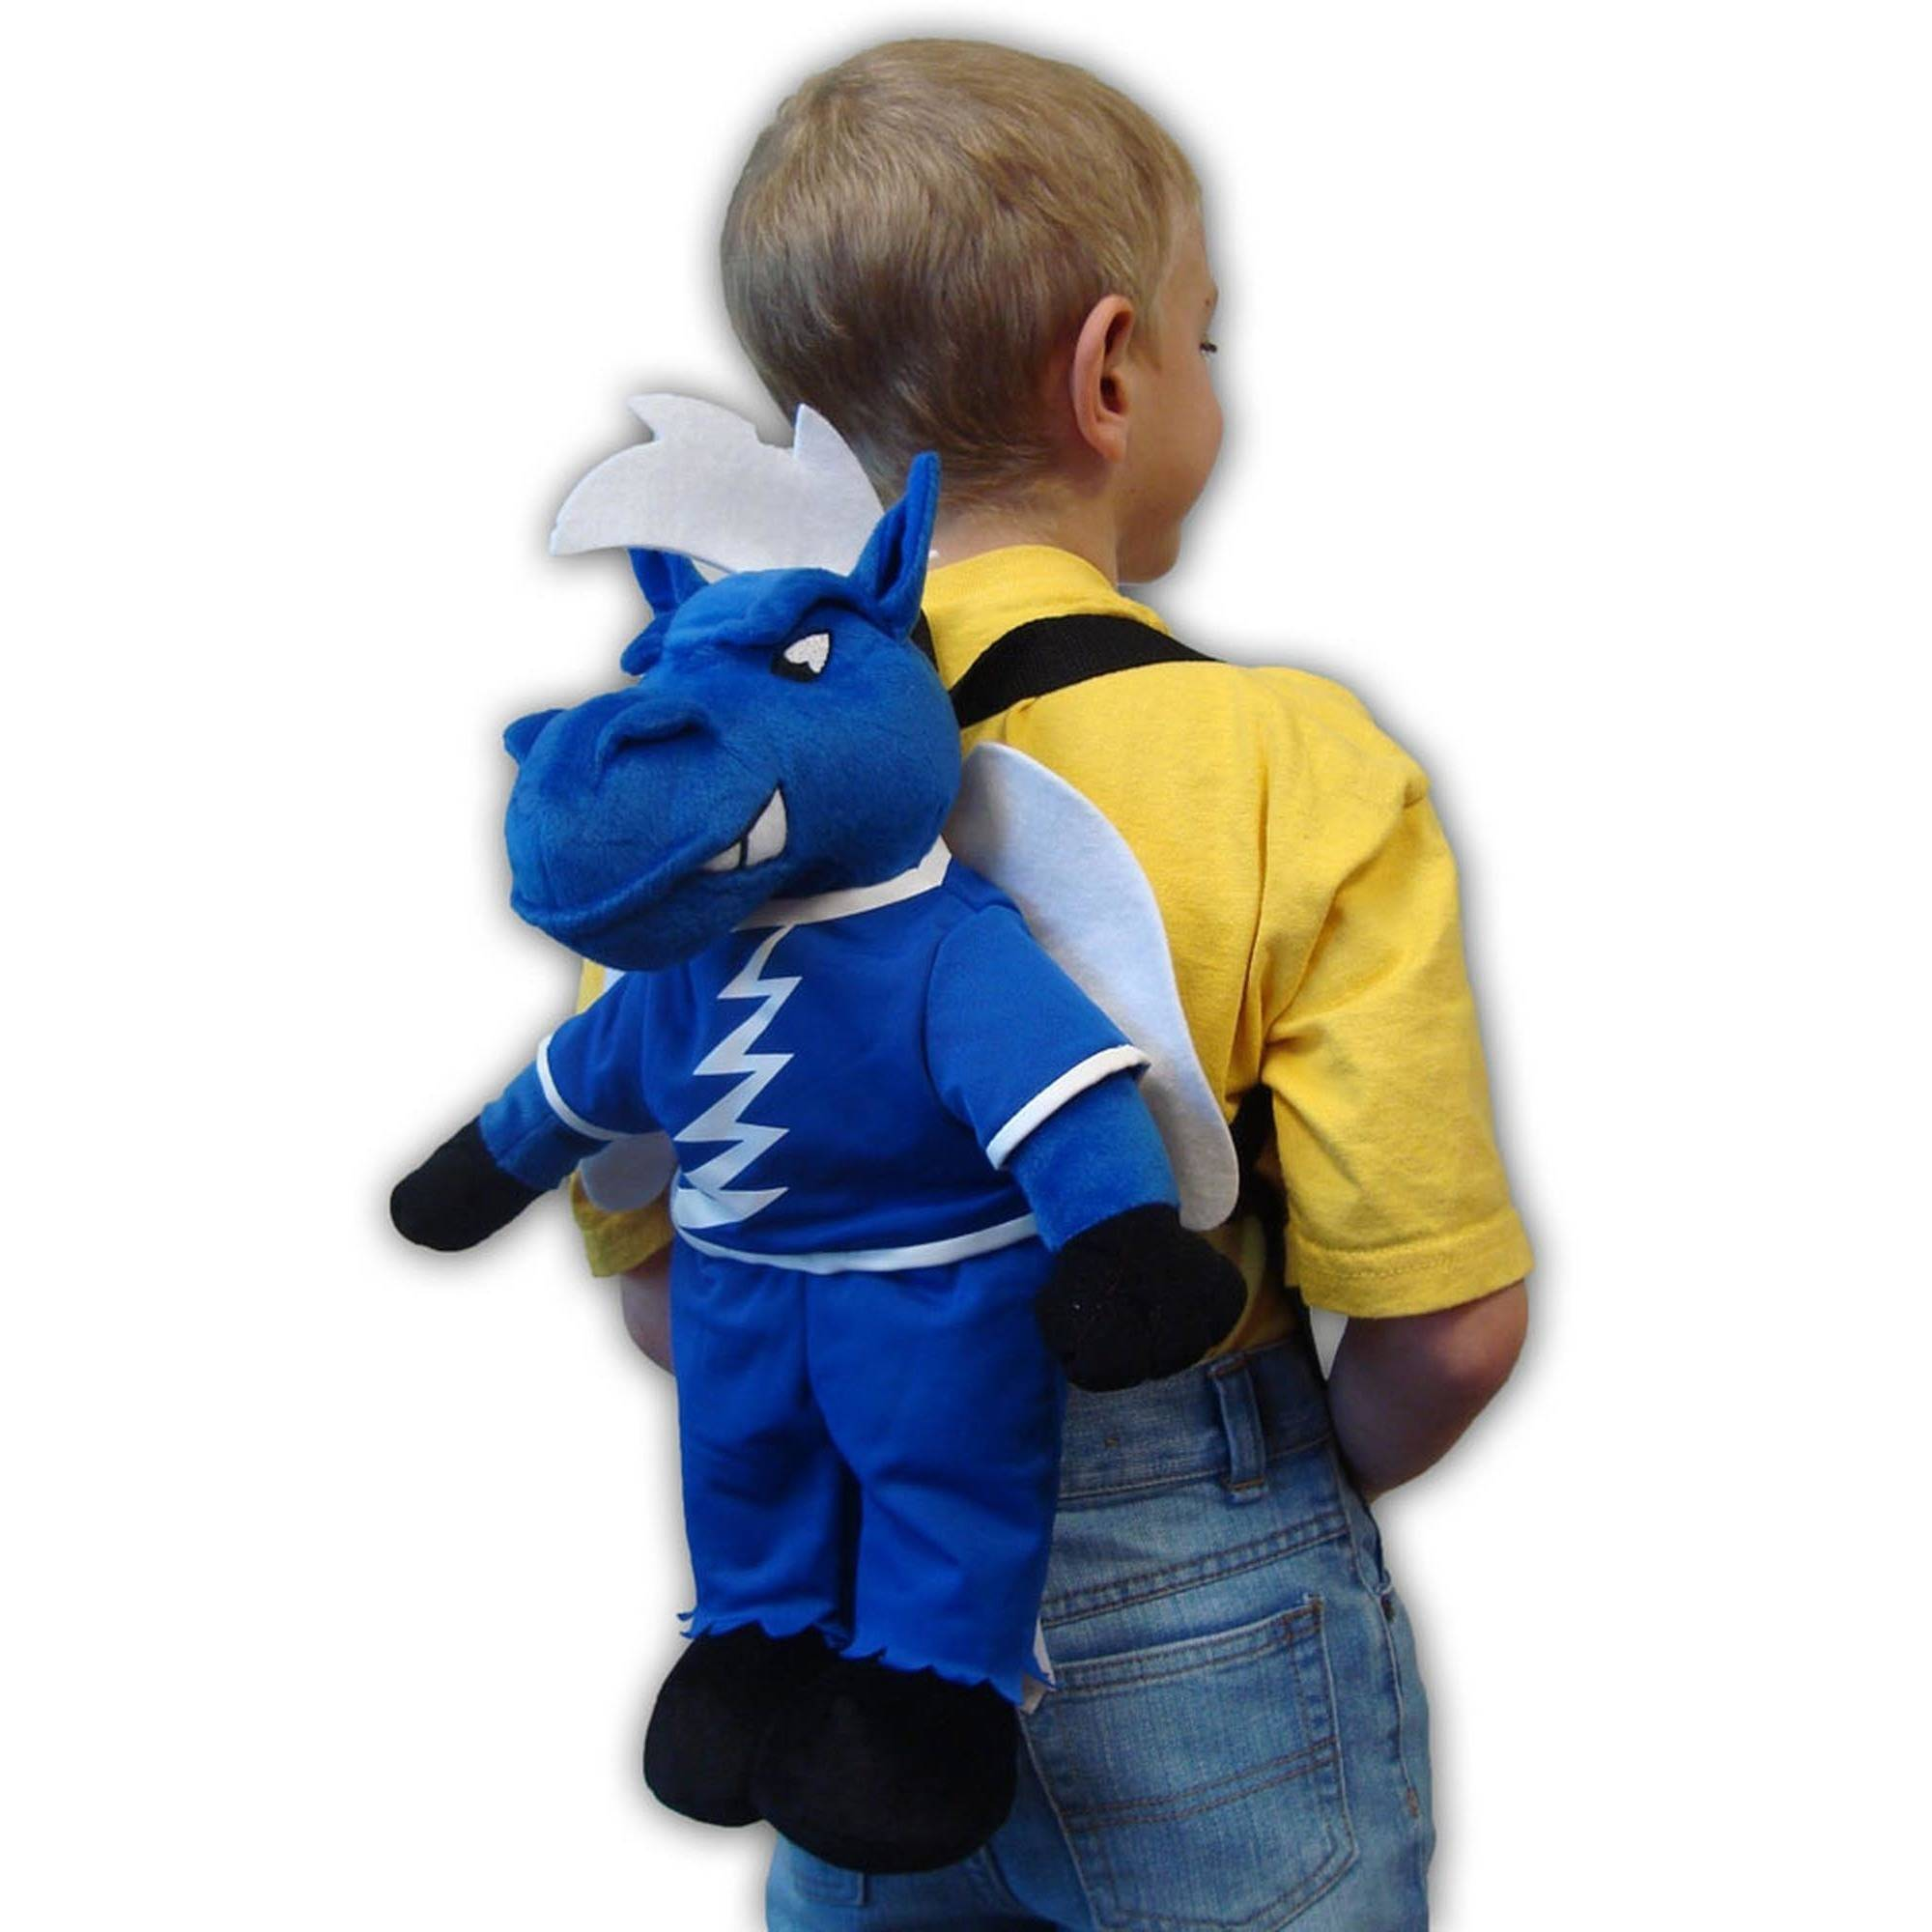 015-68 Middle Tennessee State Blue Raiders Backpack